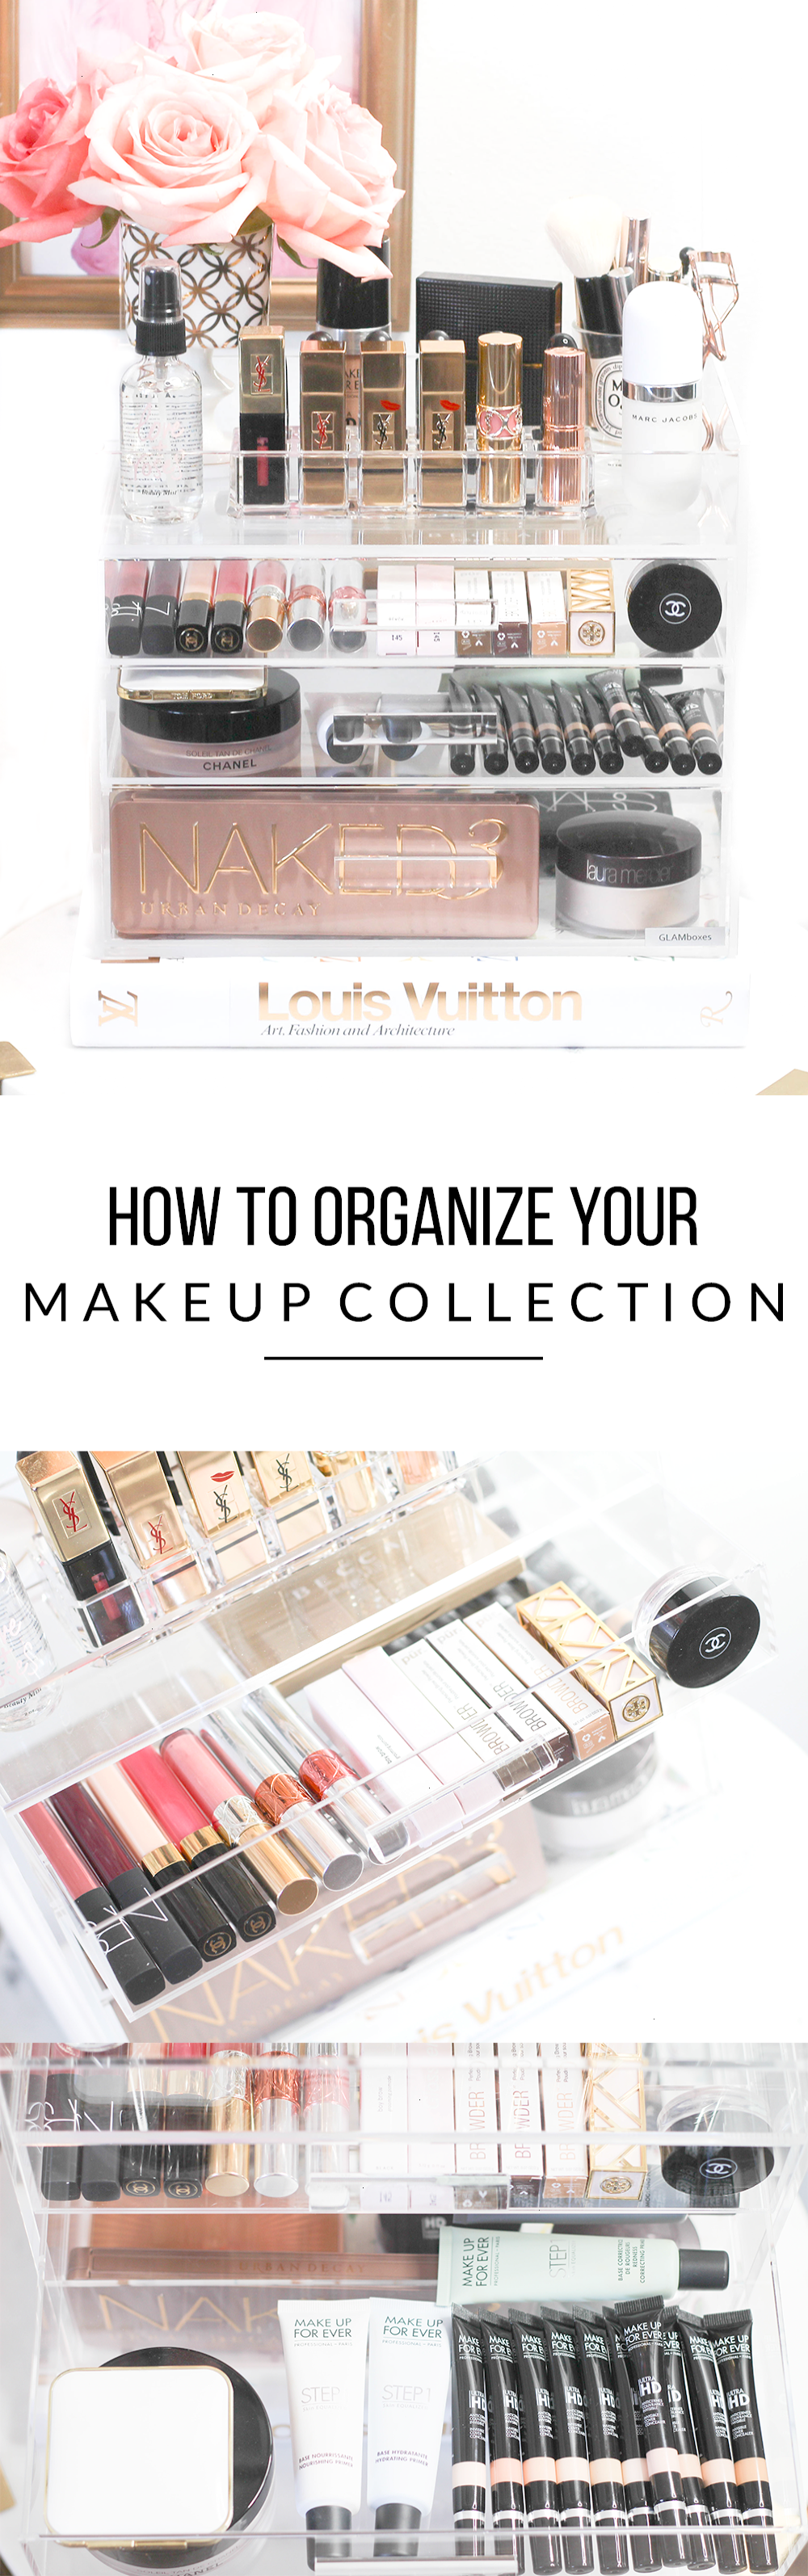 How To Organize Your Makeup Collection - Makeup Organization -